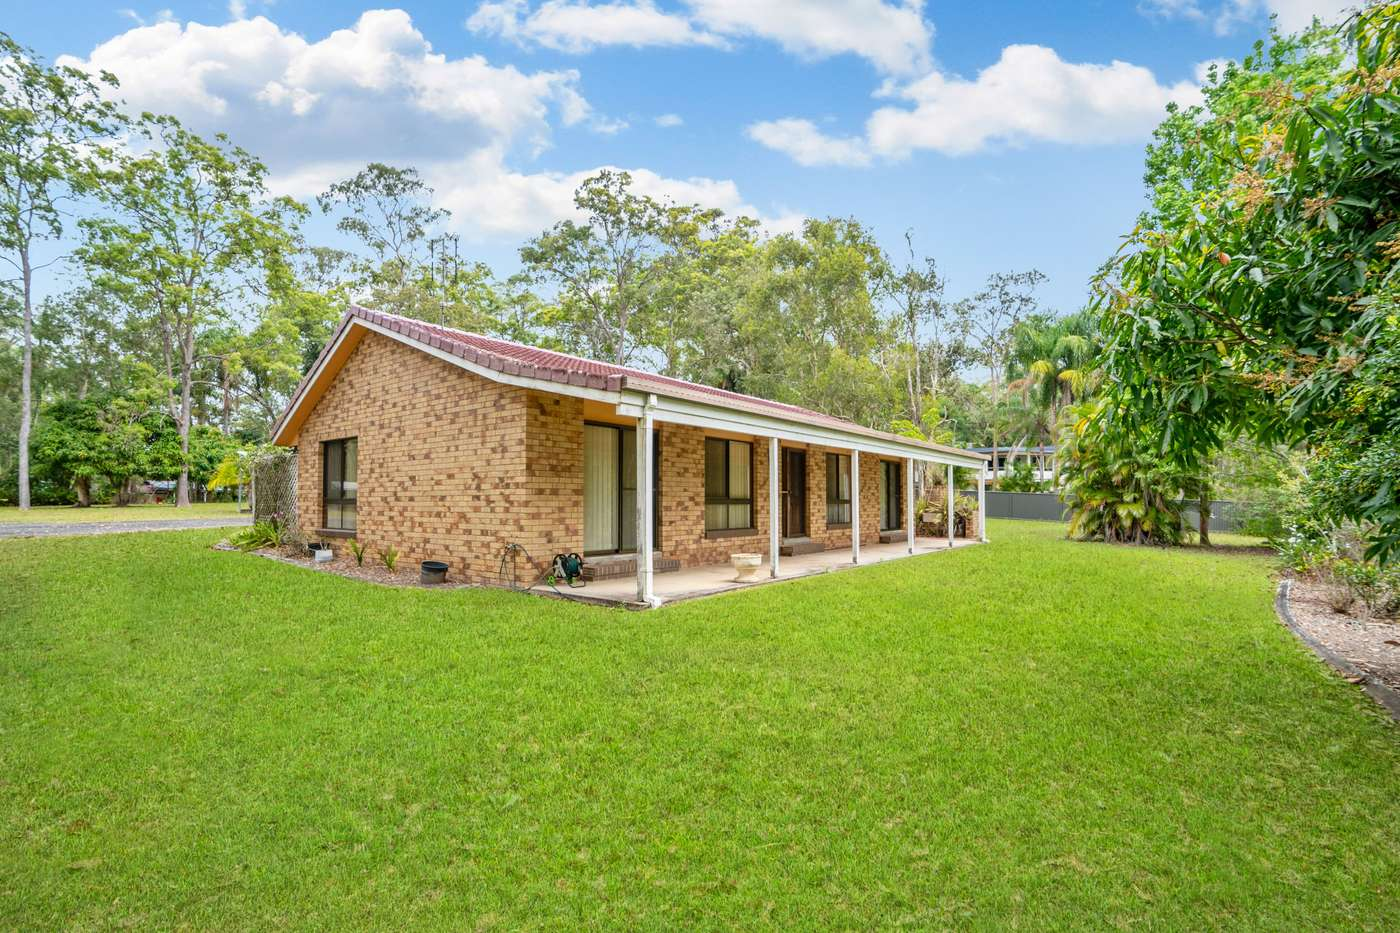 Main view of Homely house listing, 11 Hamilton Close, Mooloolah Valley, QLD 4553